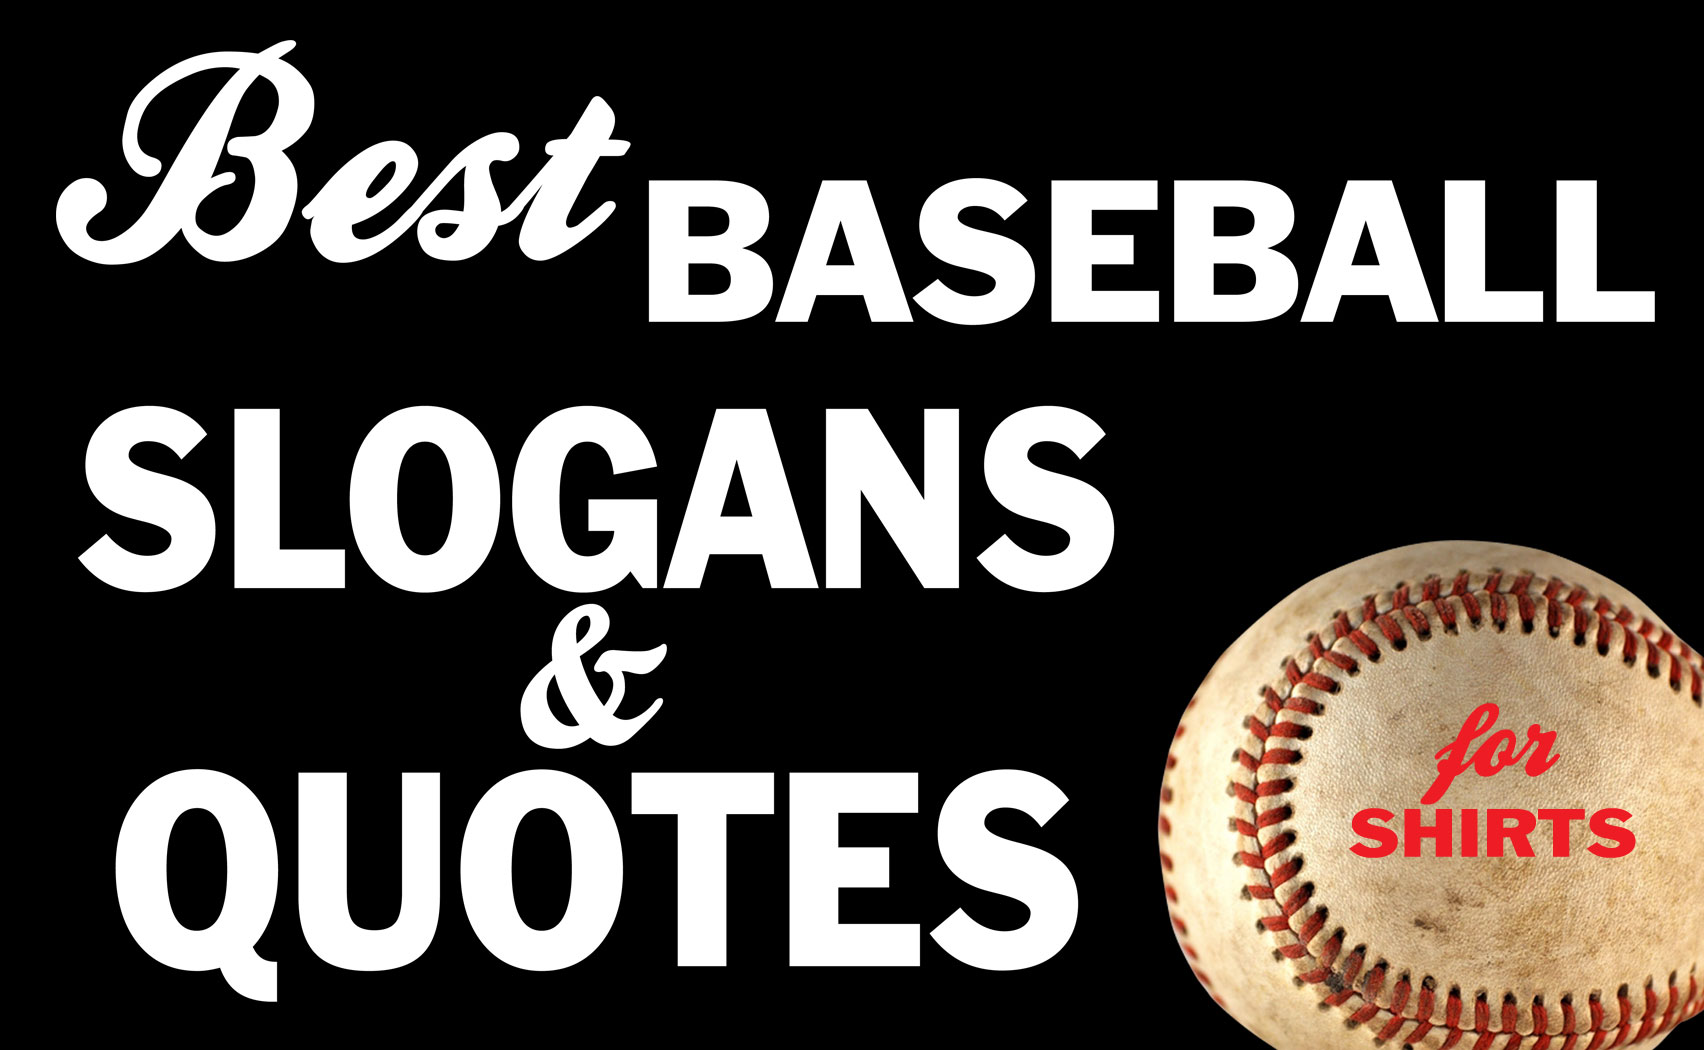 iza design blogthe best baseball slogans and quotes for t shirts - Baseball T Shirt Designs Ideas